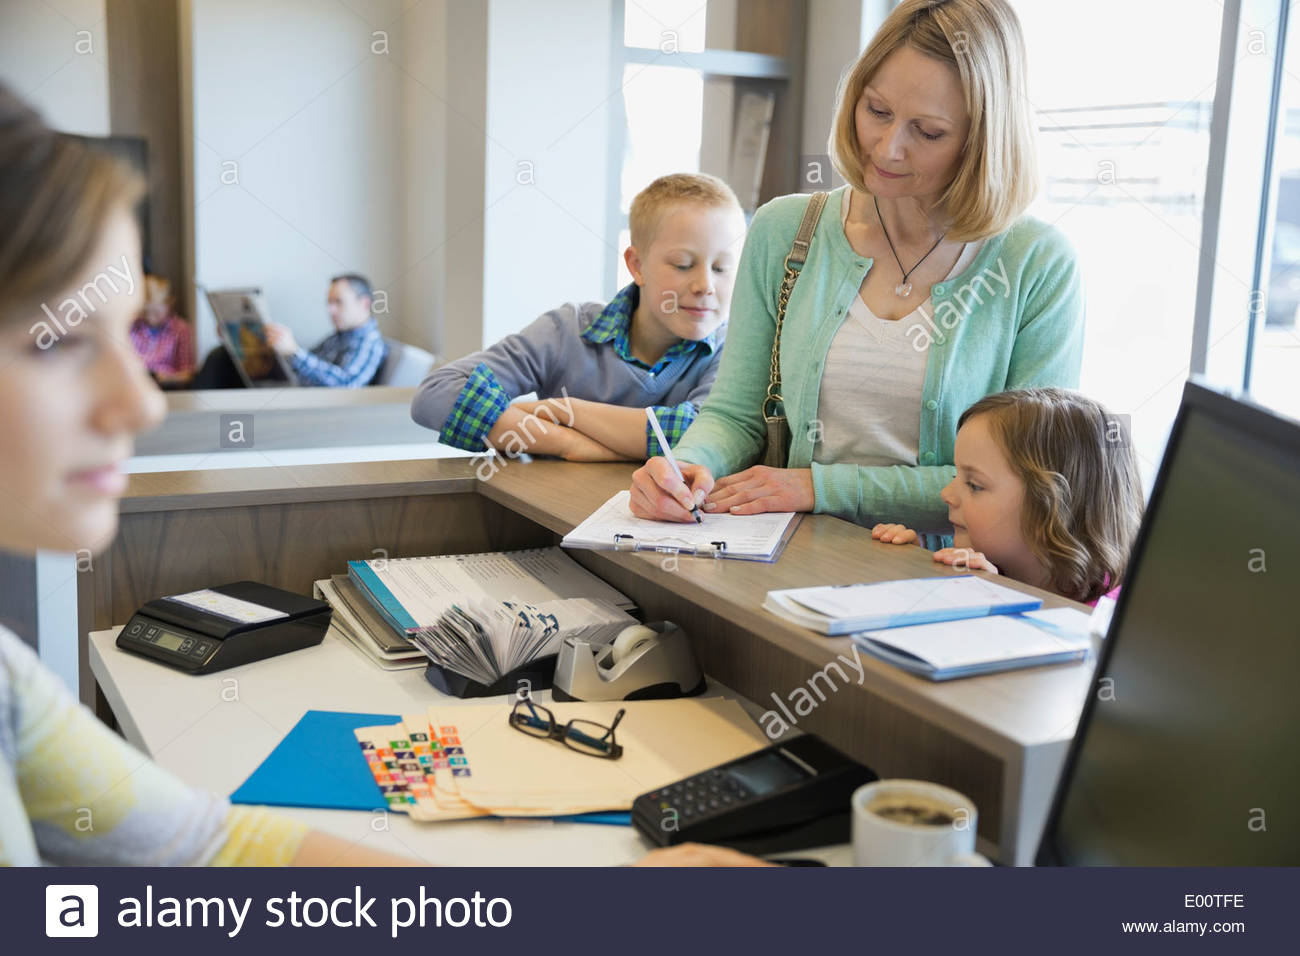 Woman filling out paperwork at dentists office - Stock Image